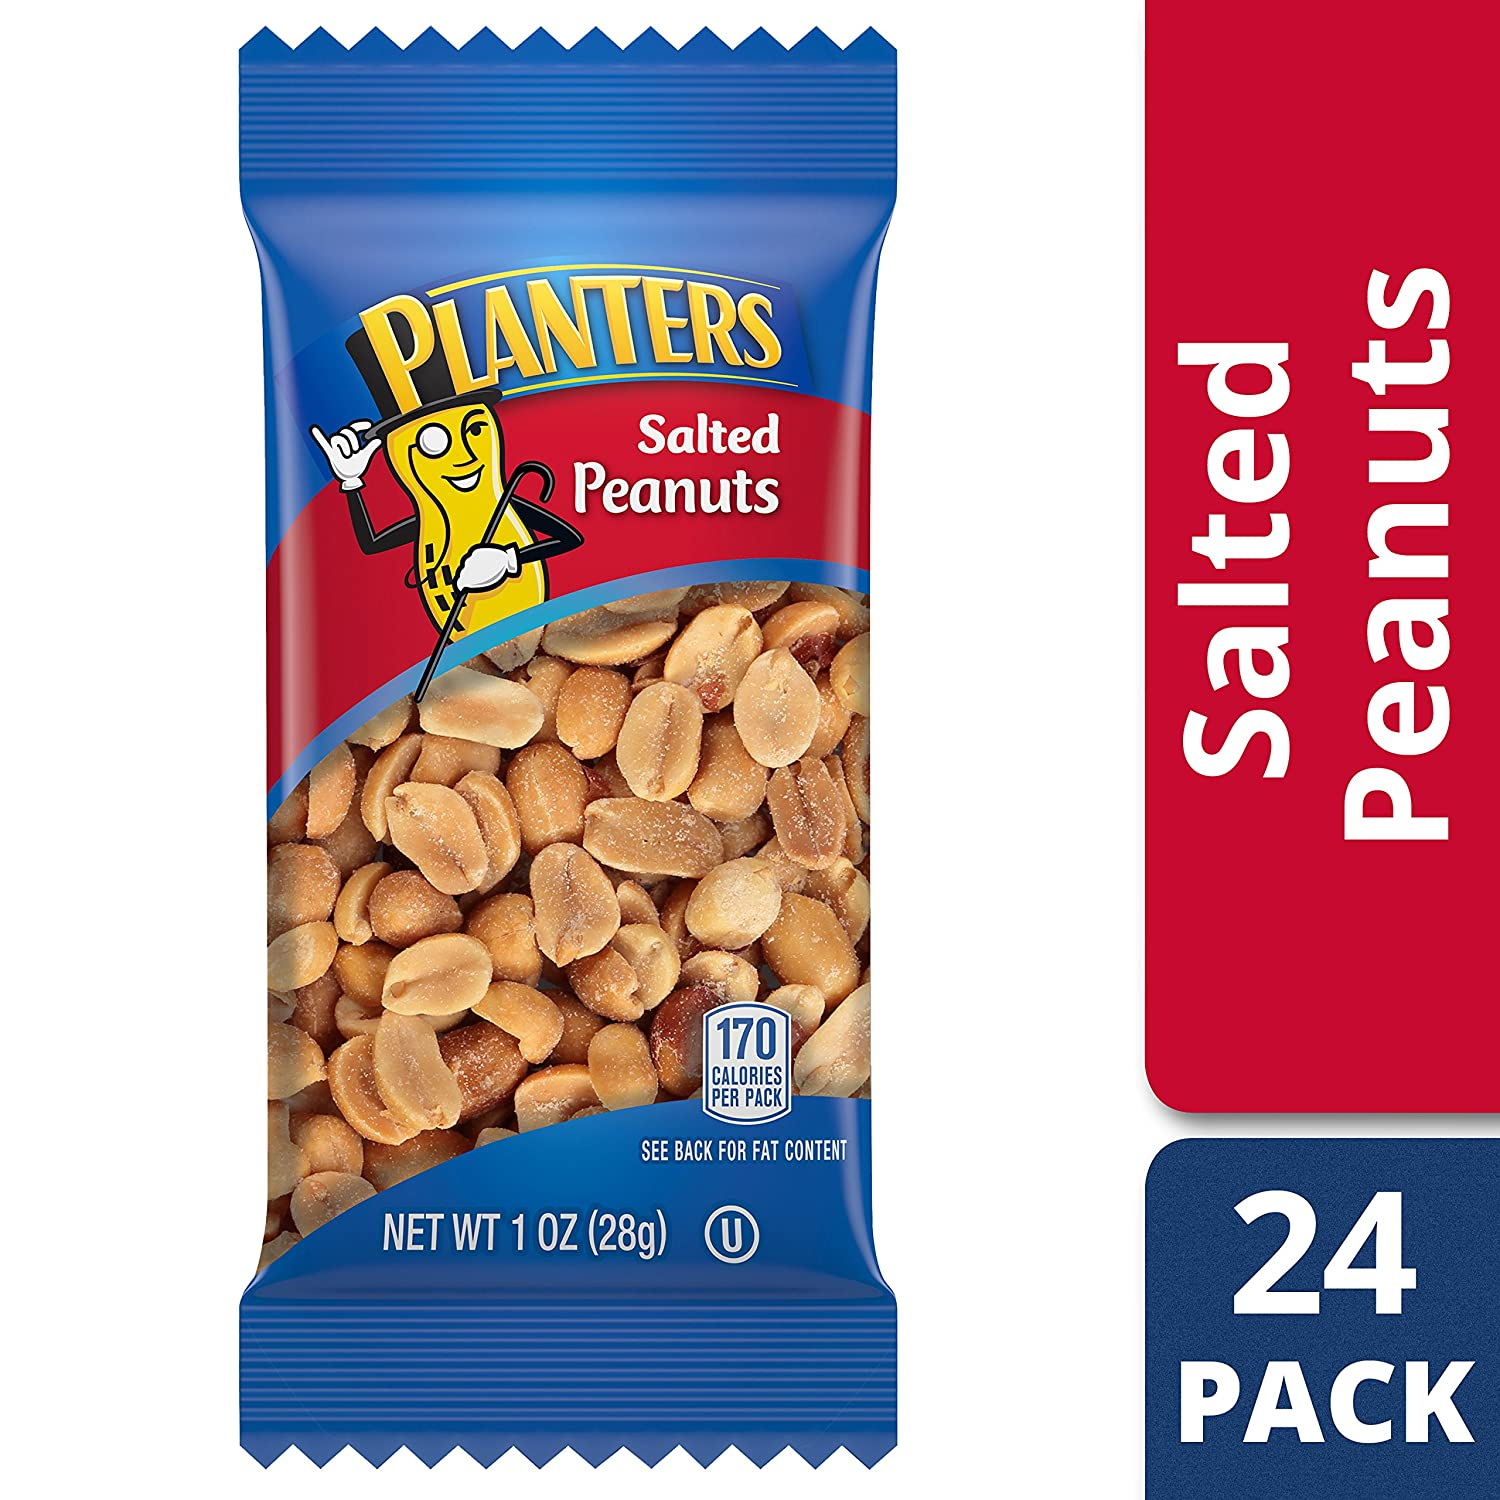 Peanuts, 24 pack. Do visit these 23 Smart Quarantine Pantry Supplies for Social Isolation I Ordered. #quarantinesupplies #pantryitems #nonperishables